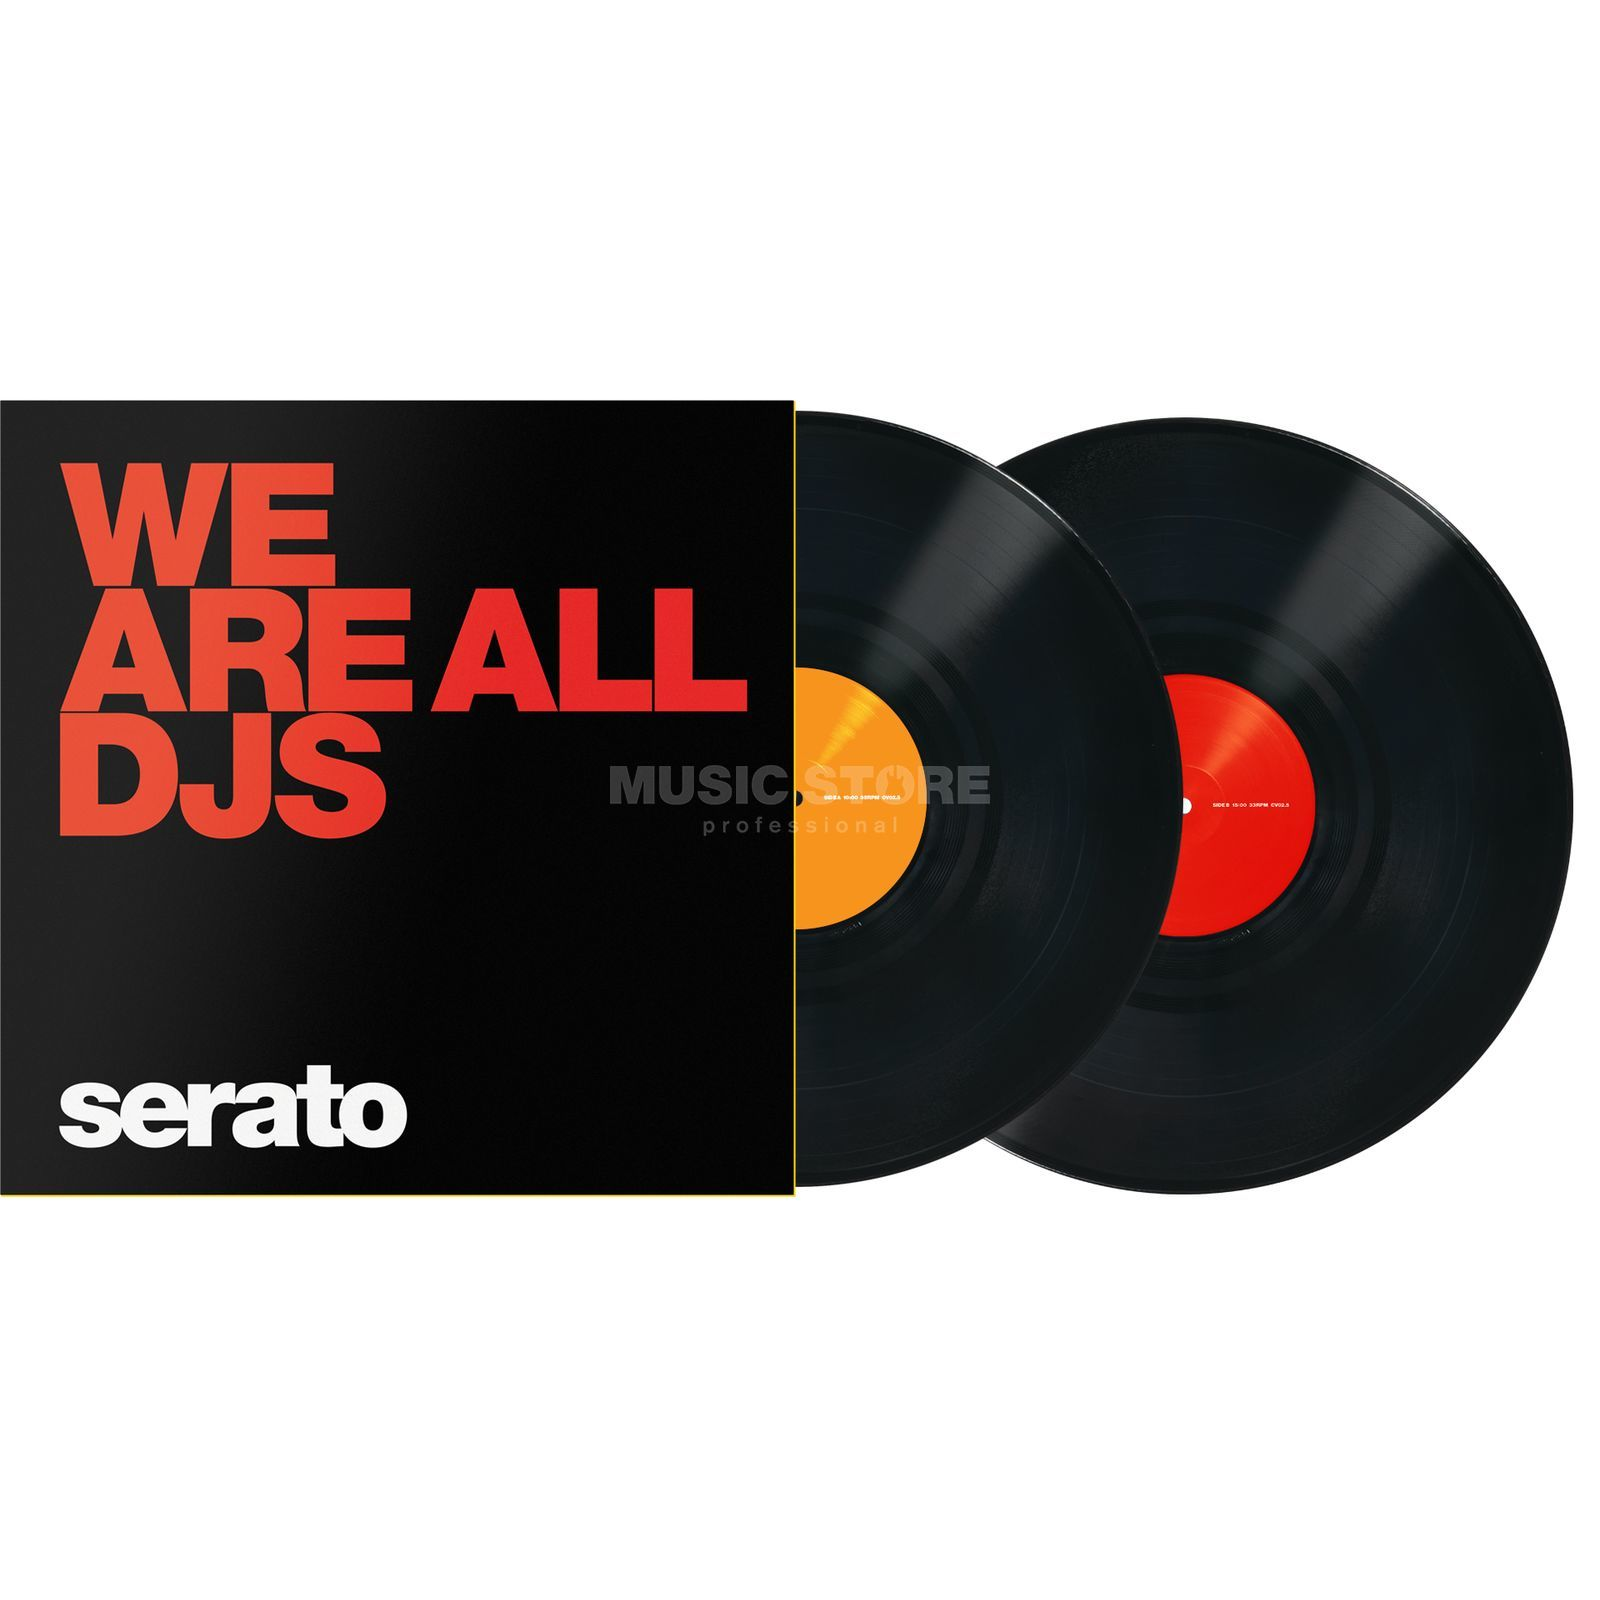 Serato Manifesto Control Vinyls noir, We are All DJs Image du produit